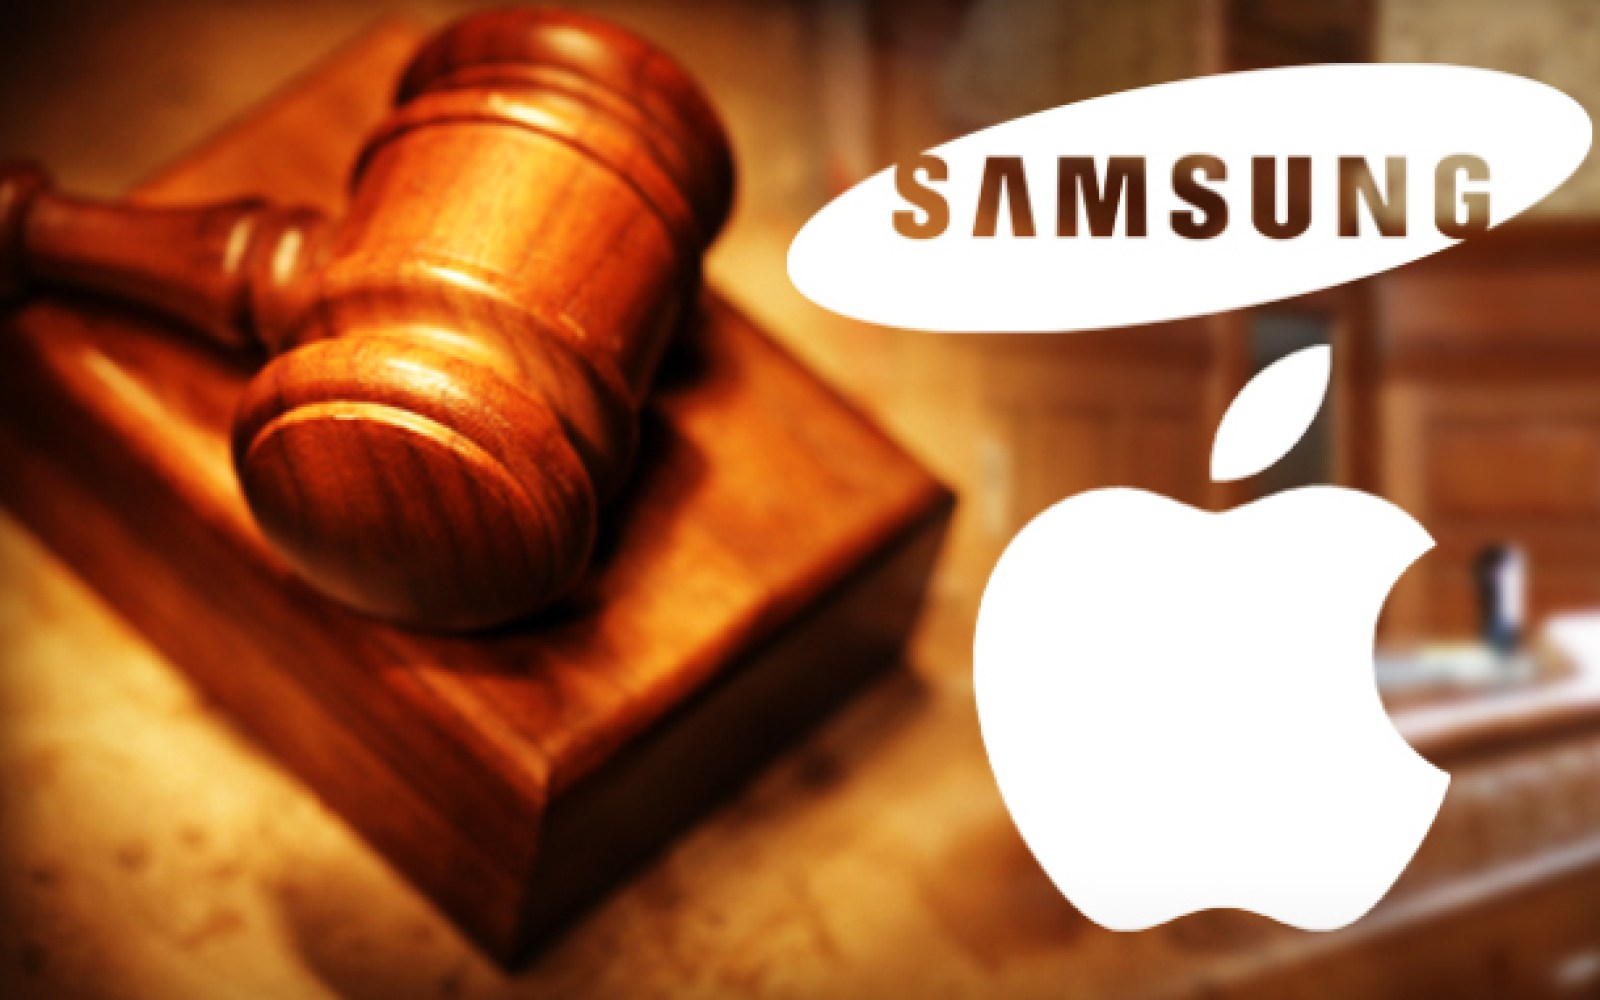 Apple 'applauds' veto of ITC iPhone/iPad ban, Samsung 'disappointed'